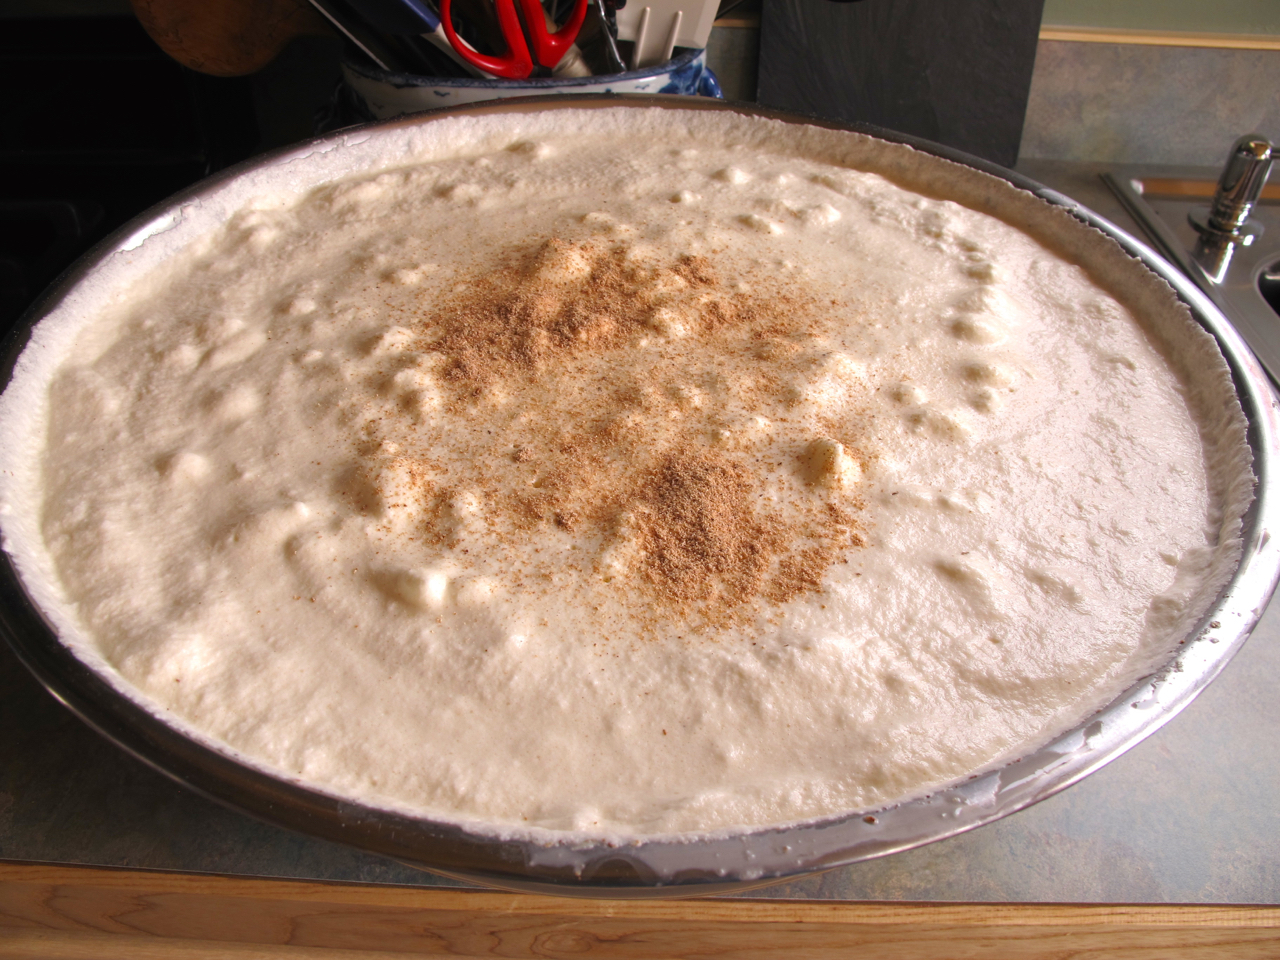 A double recipe of finished eggnog in Richard's largest bread-dough bowl